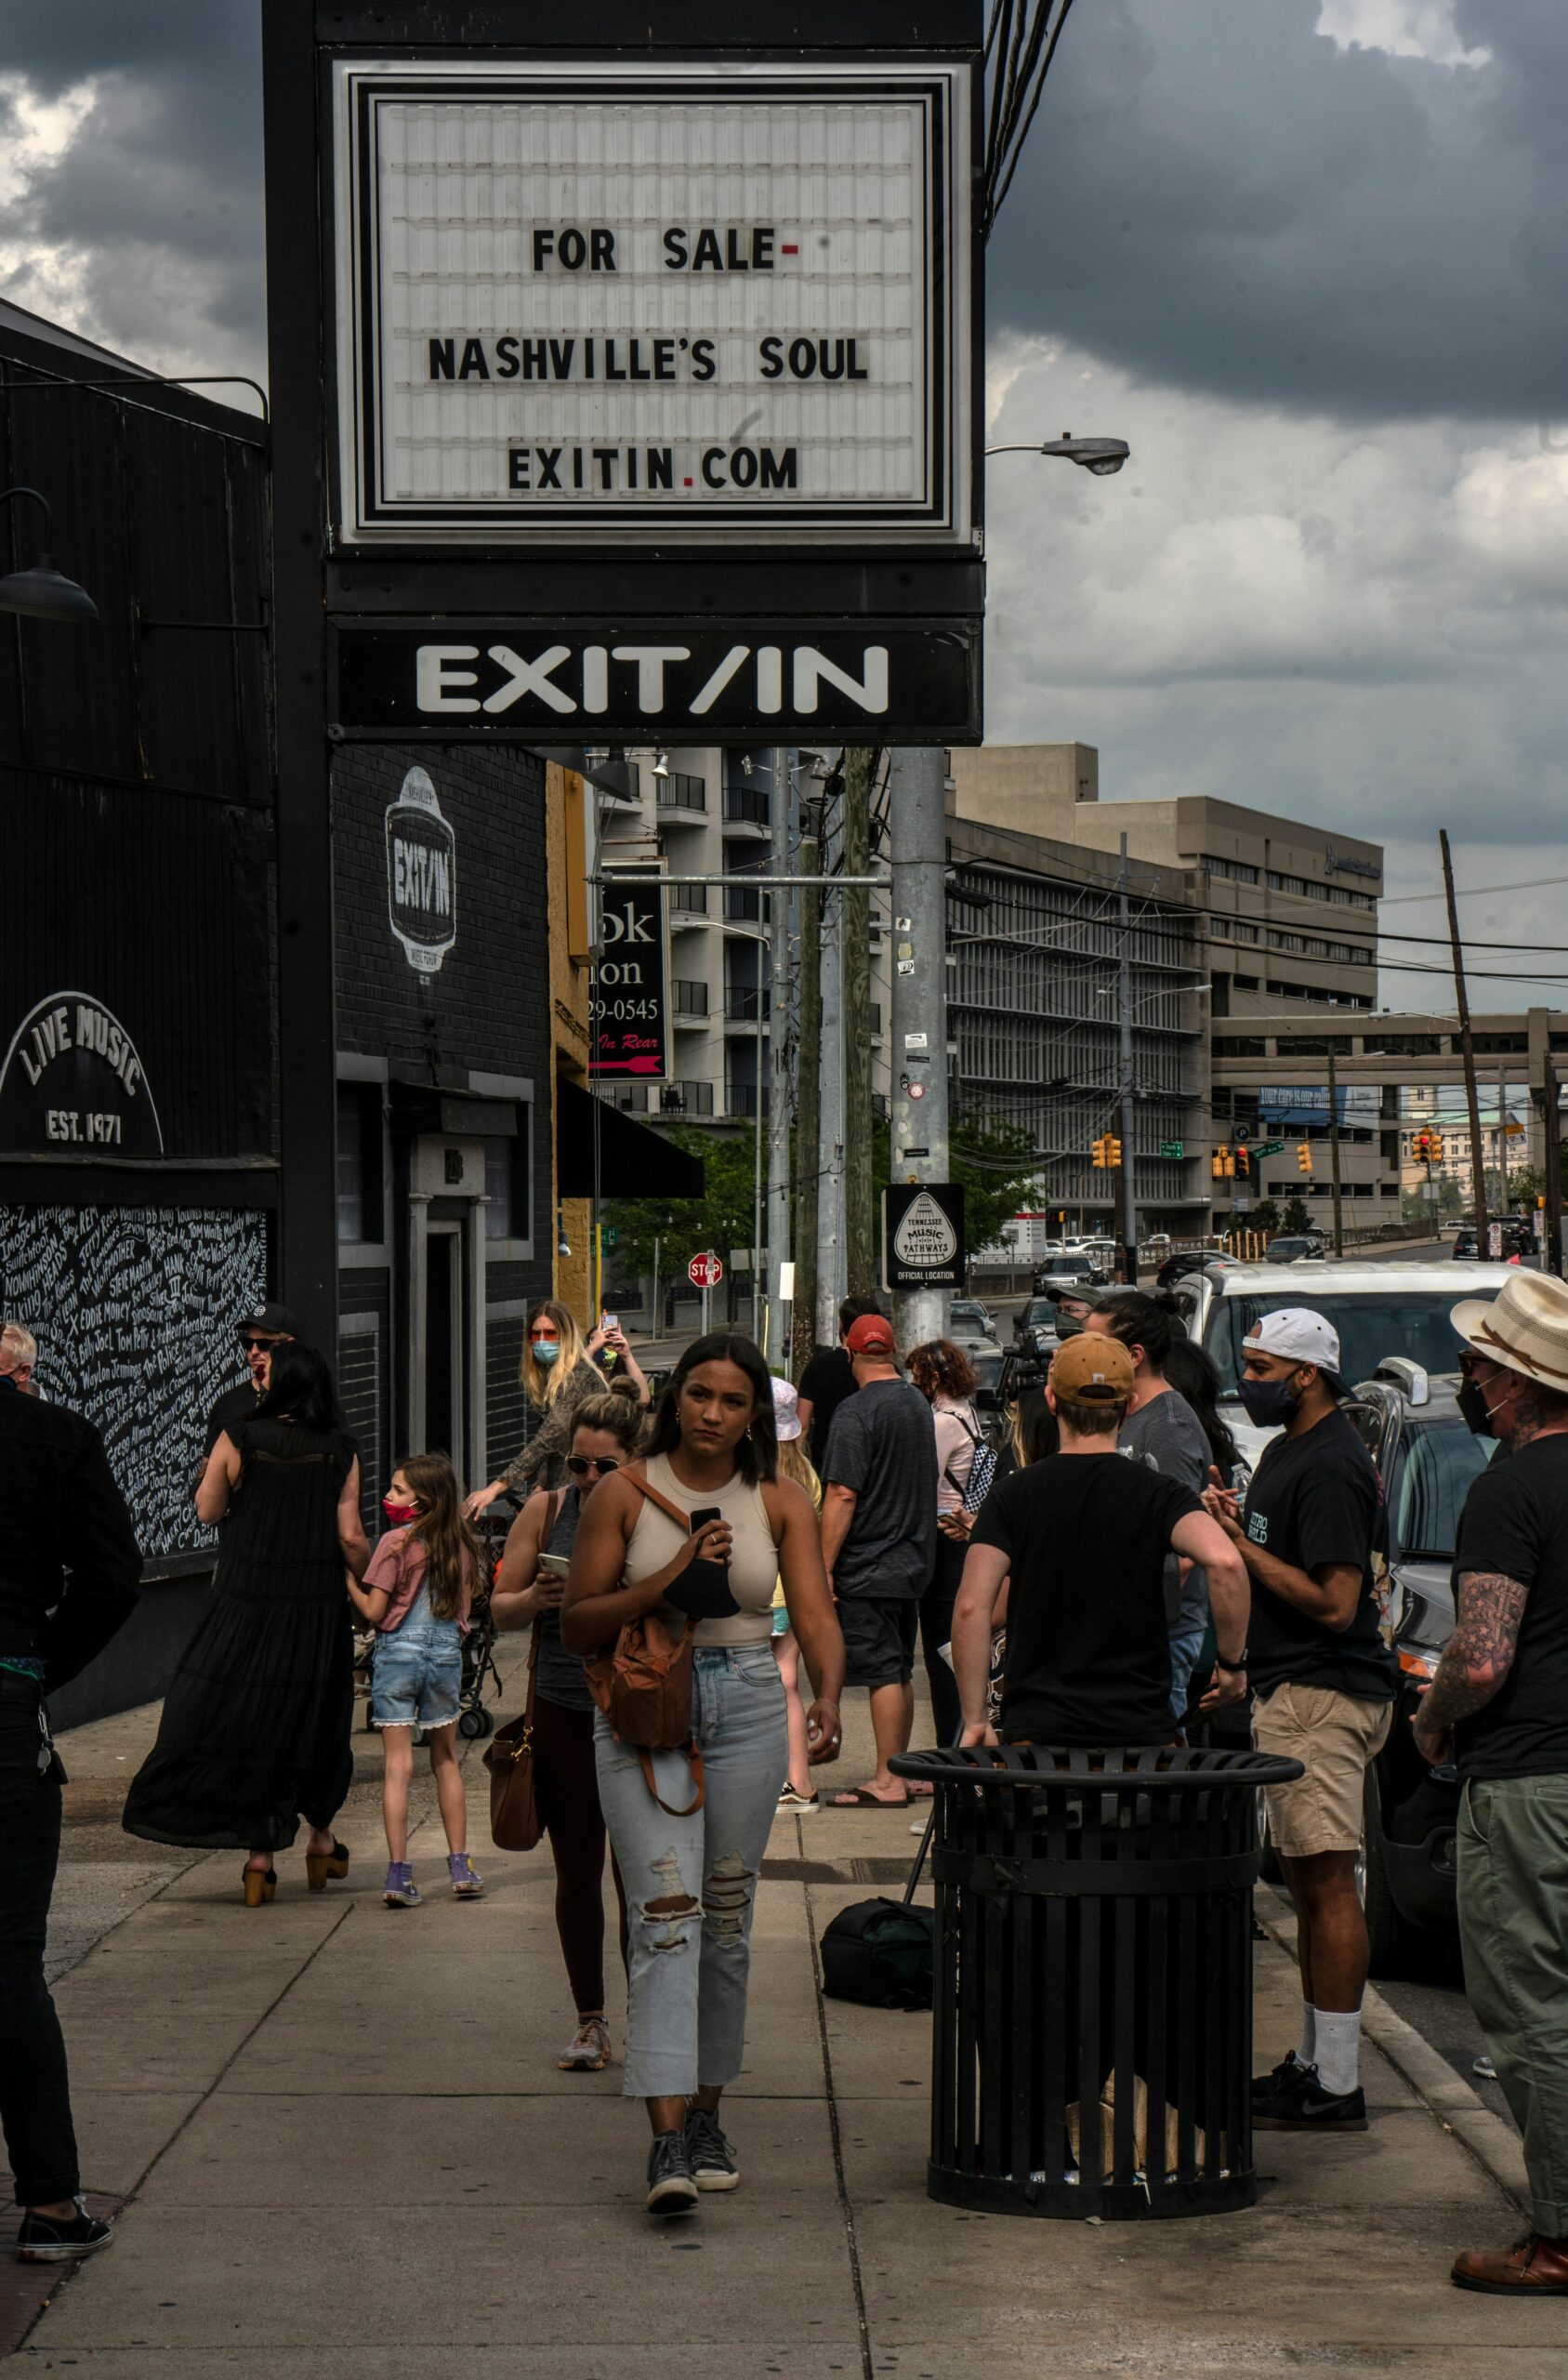 Nashville's Elliston Place, busy on Wednesday afternoon as Exit/In supporters arrived for a rally. (Photo: John Partipilo)